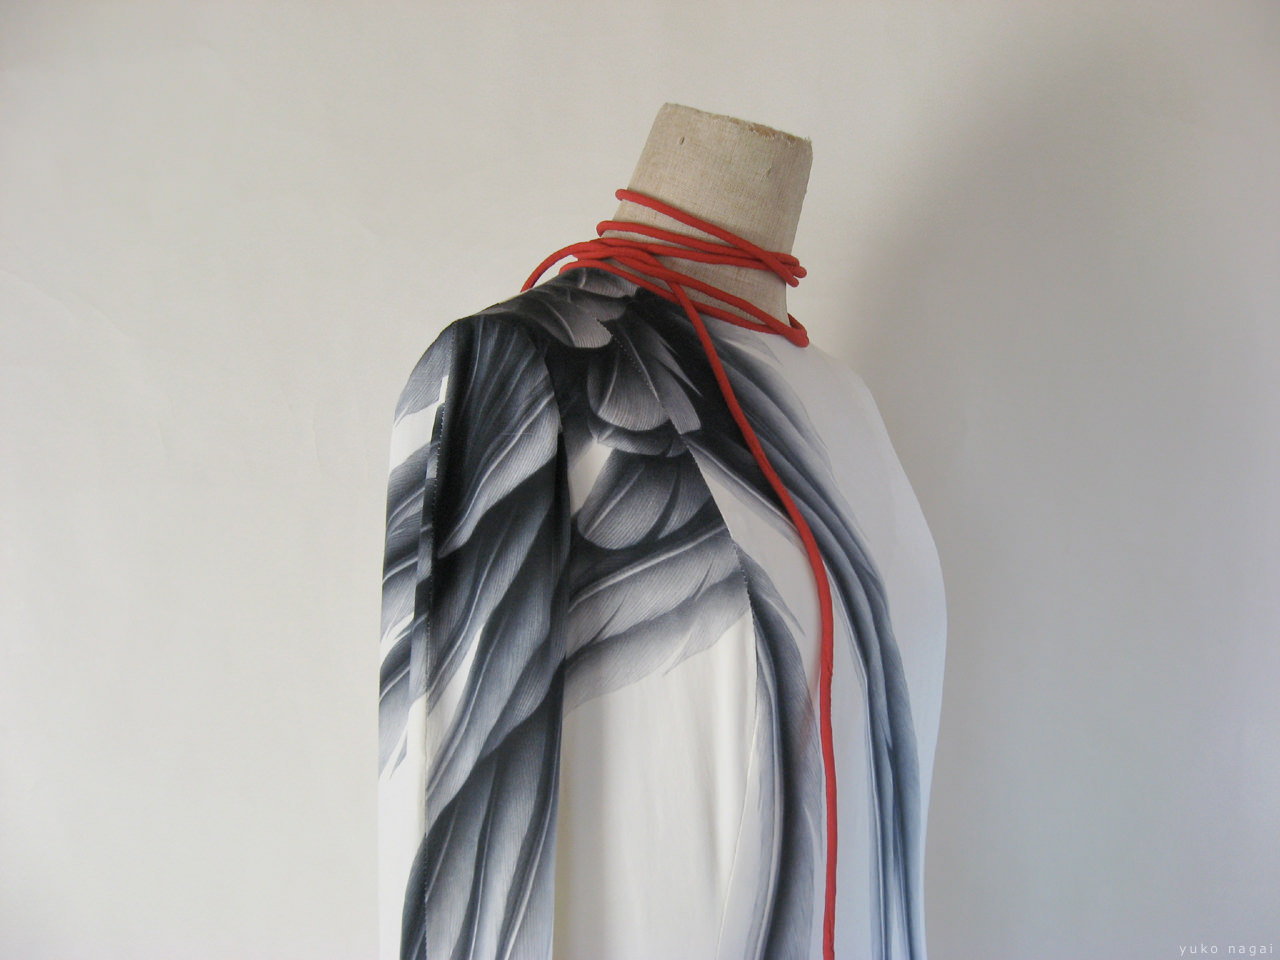 A wing painting on a dress.